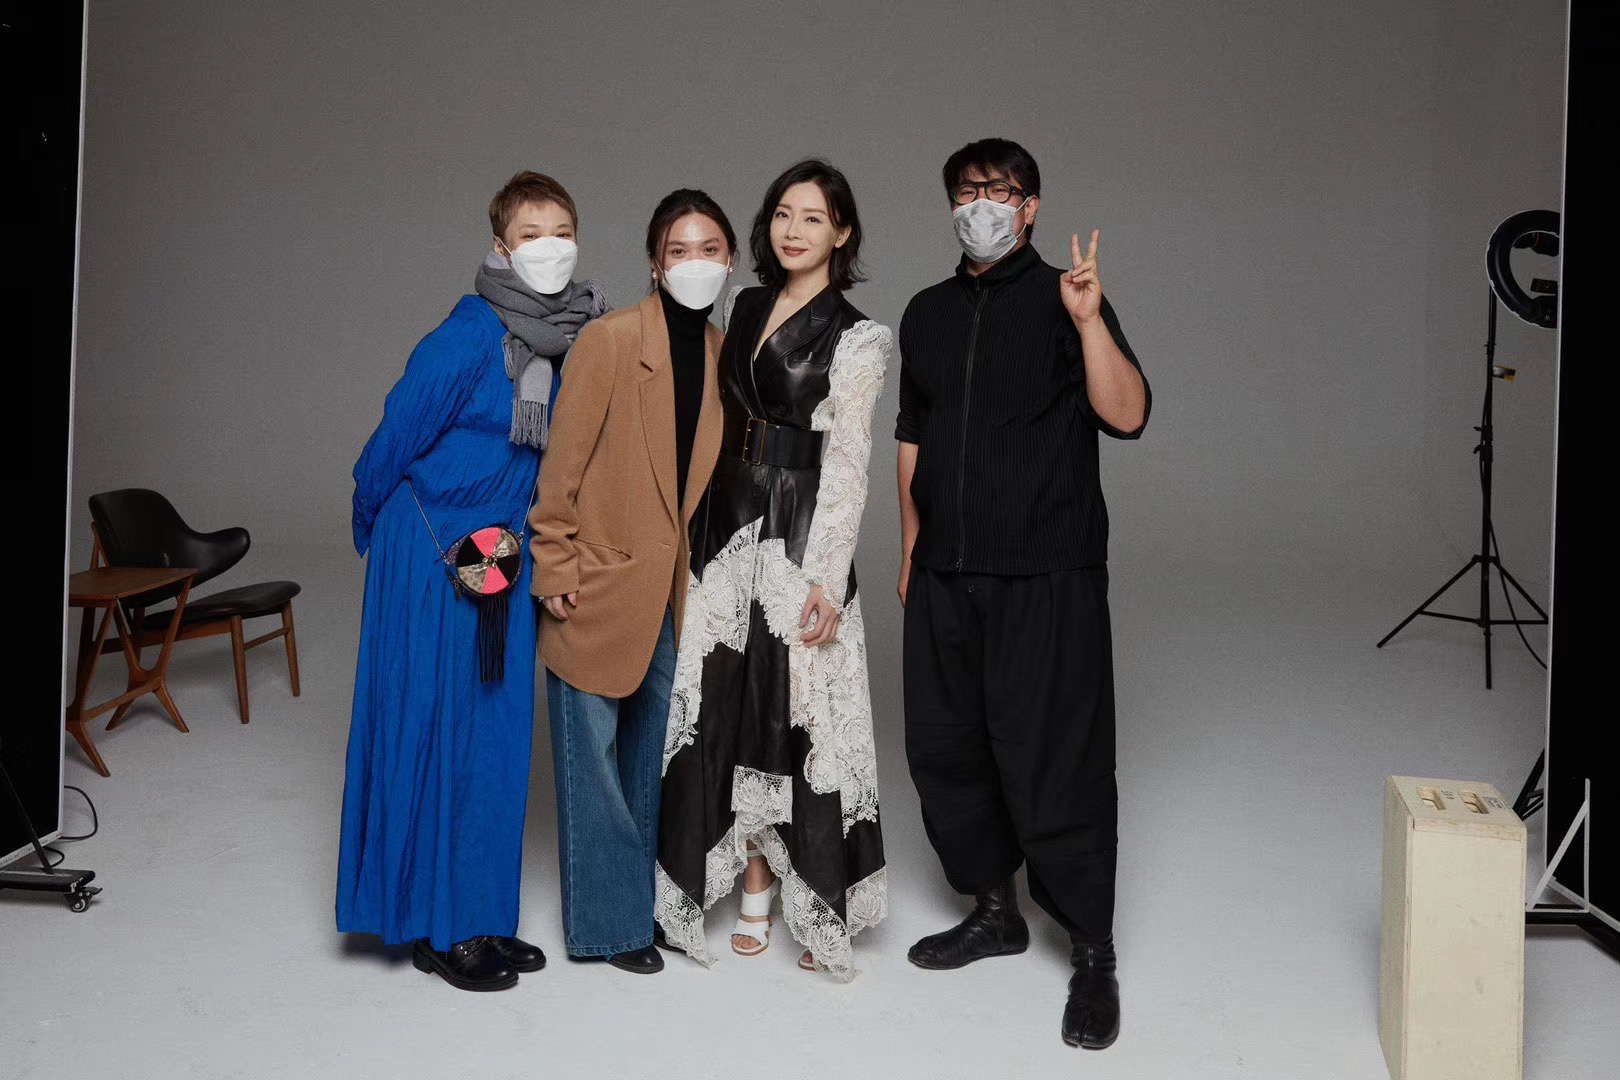 Jumbo Tsui on set with the team, wearing mask during the outbreak in China.